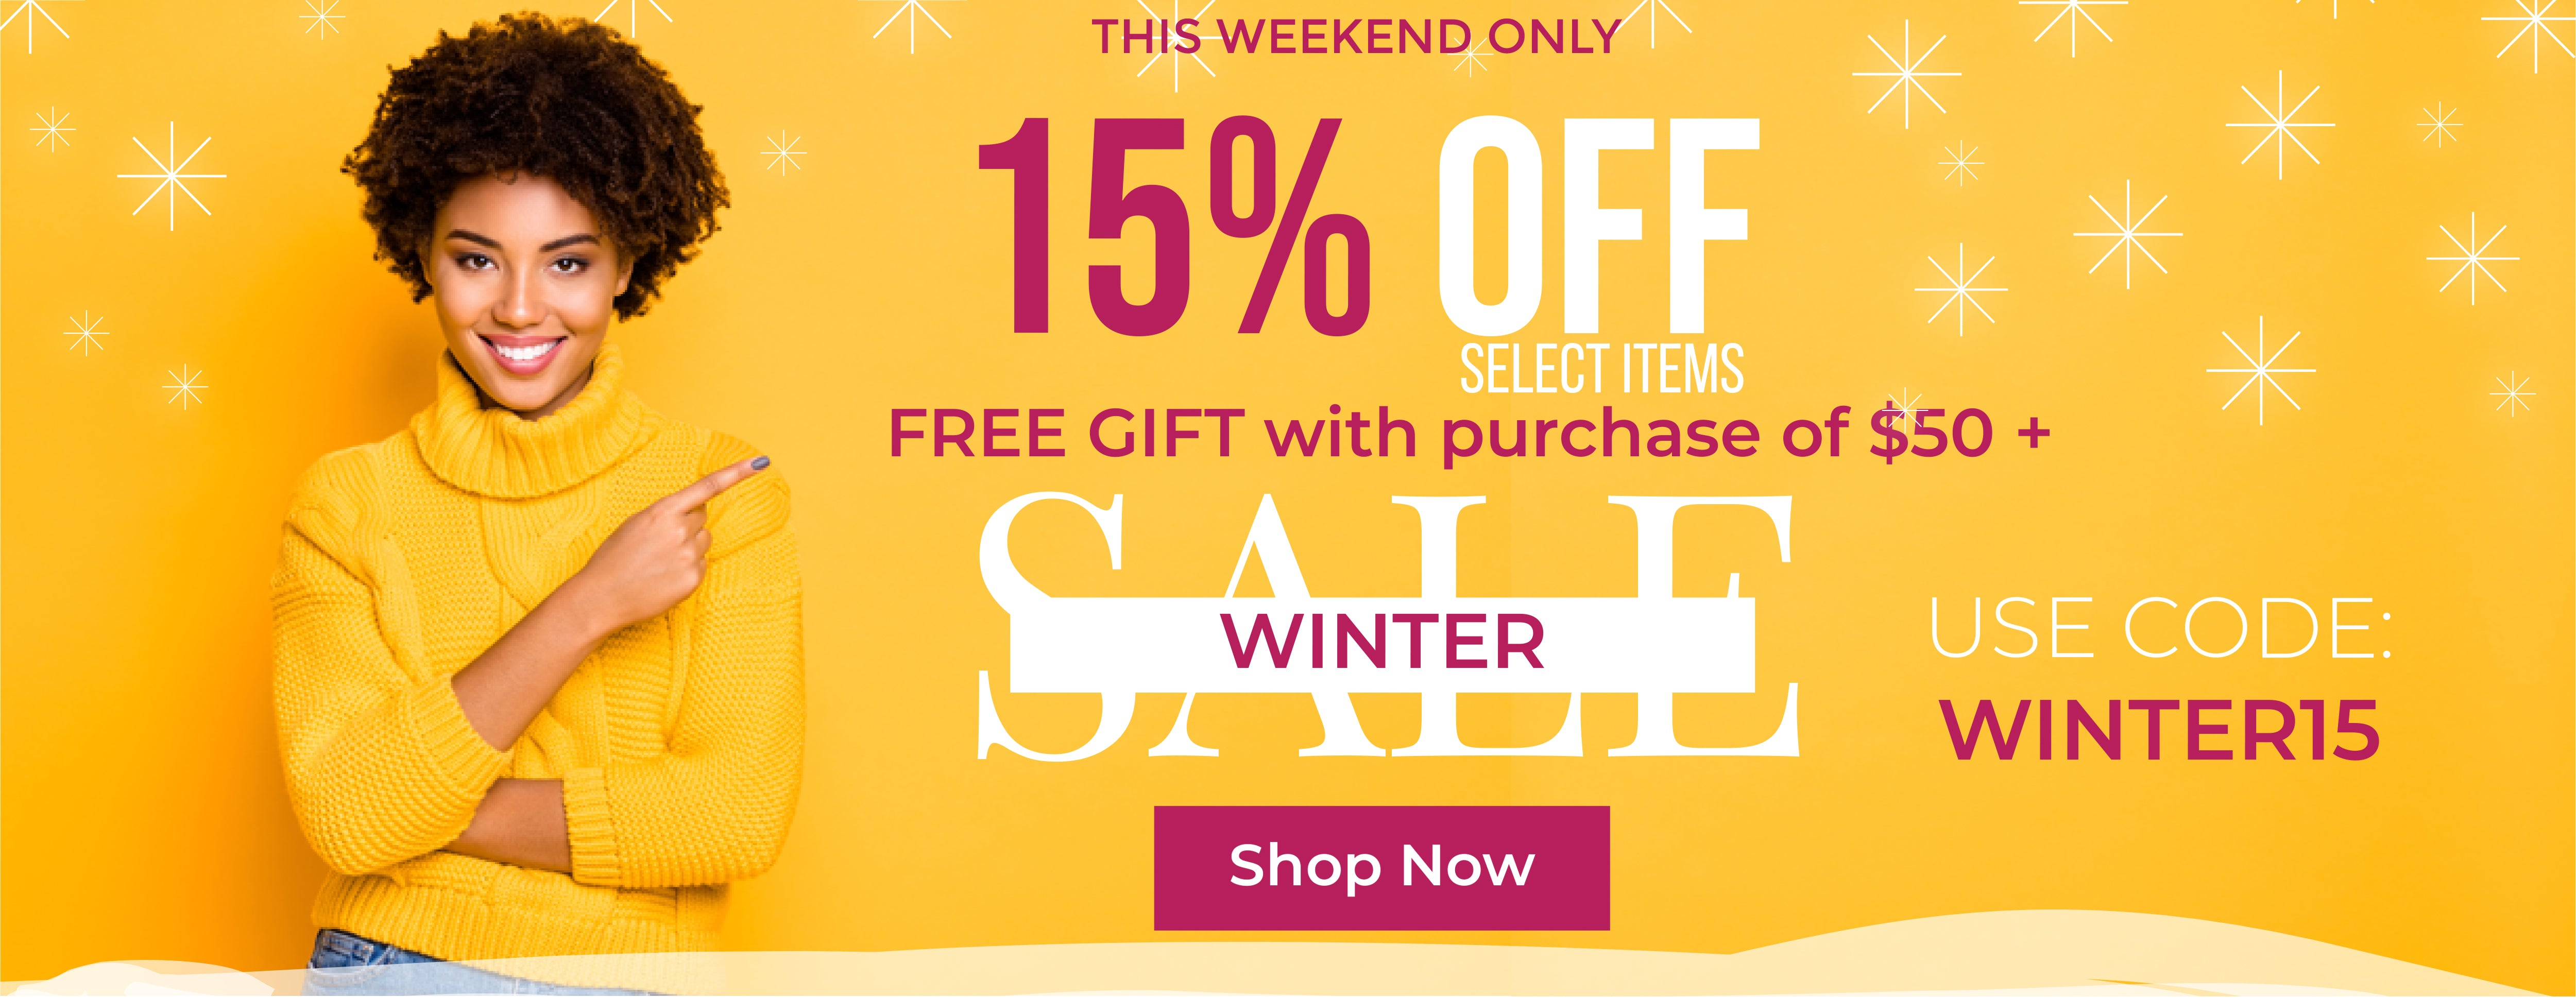 Winter Sale - 15% Off Select Items